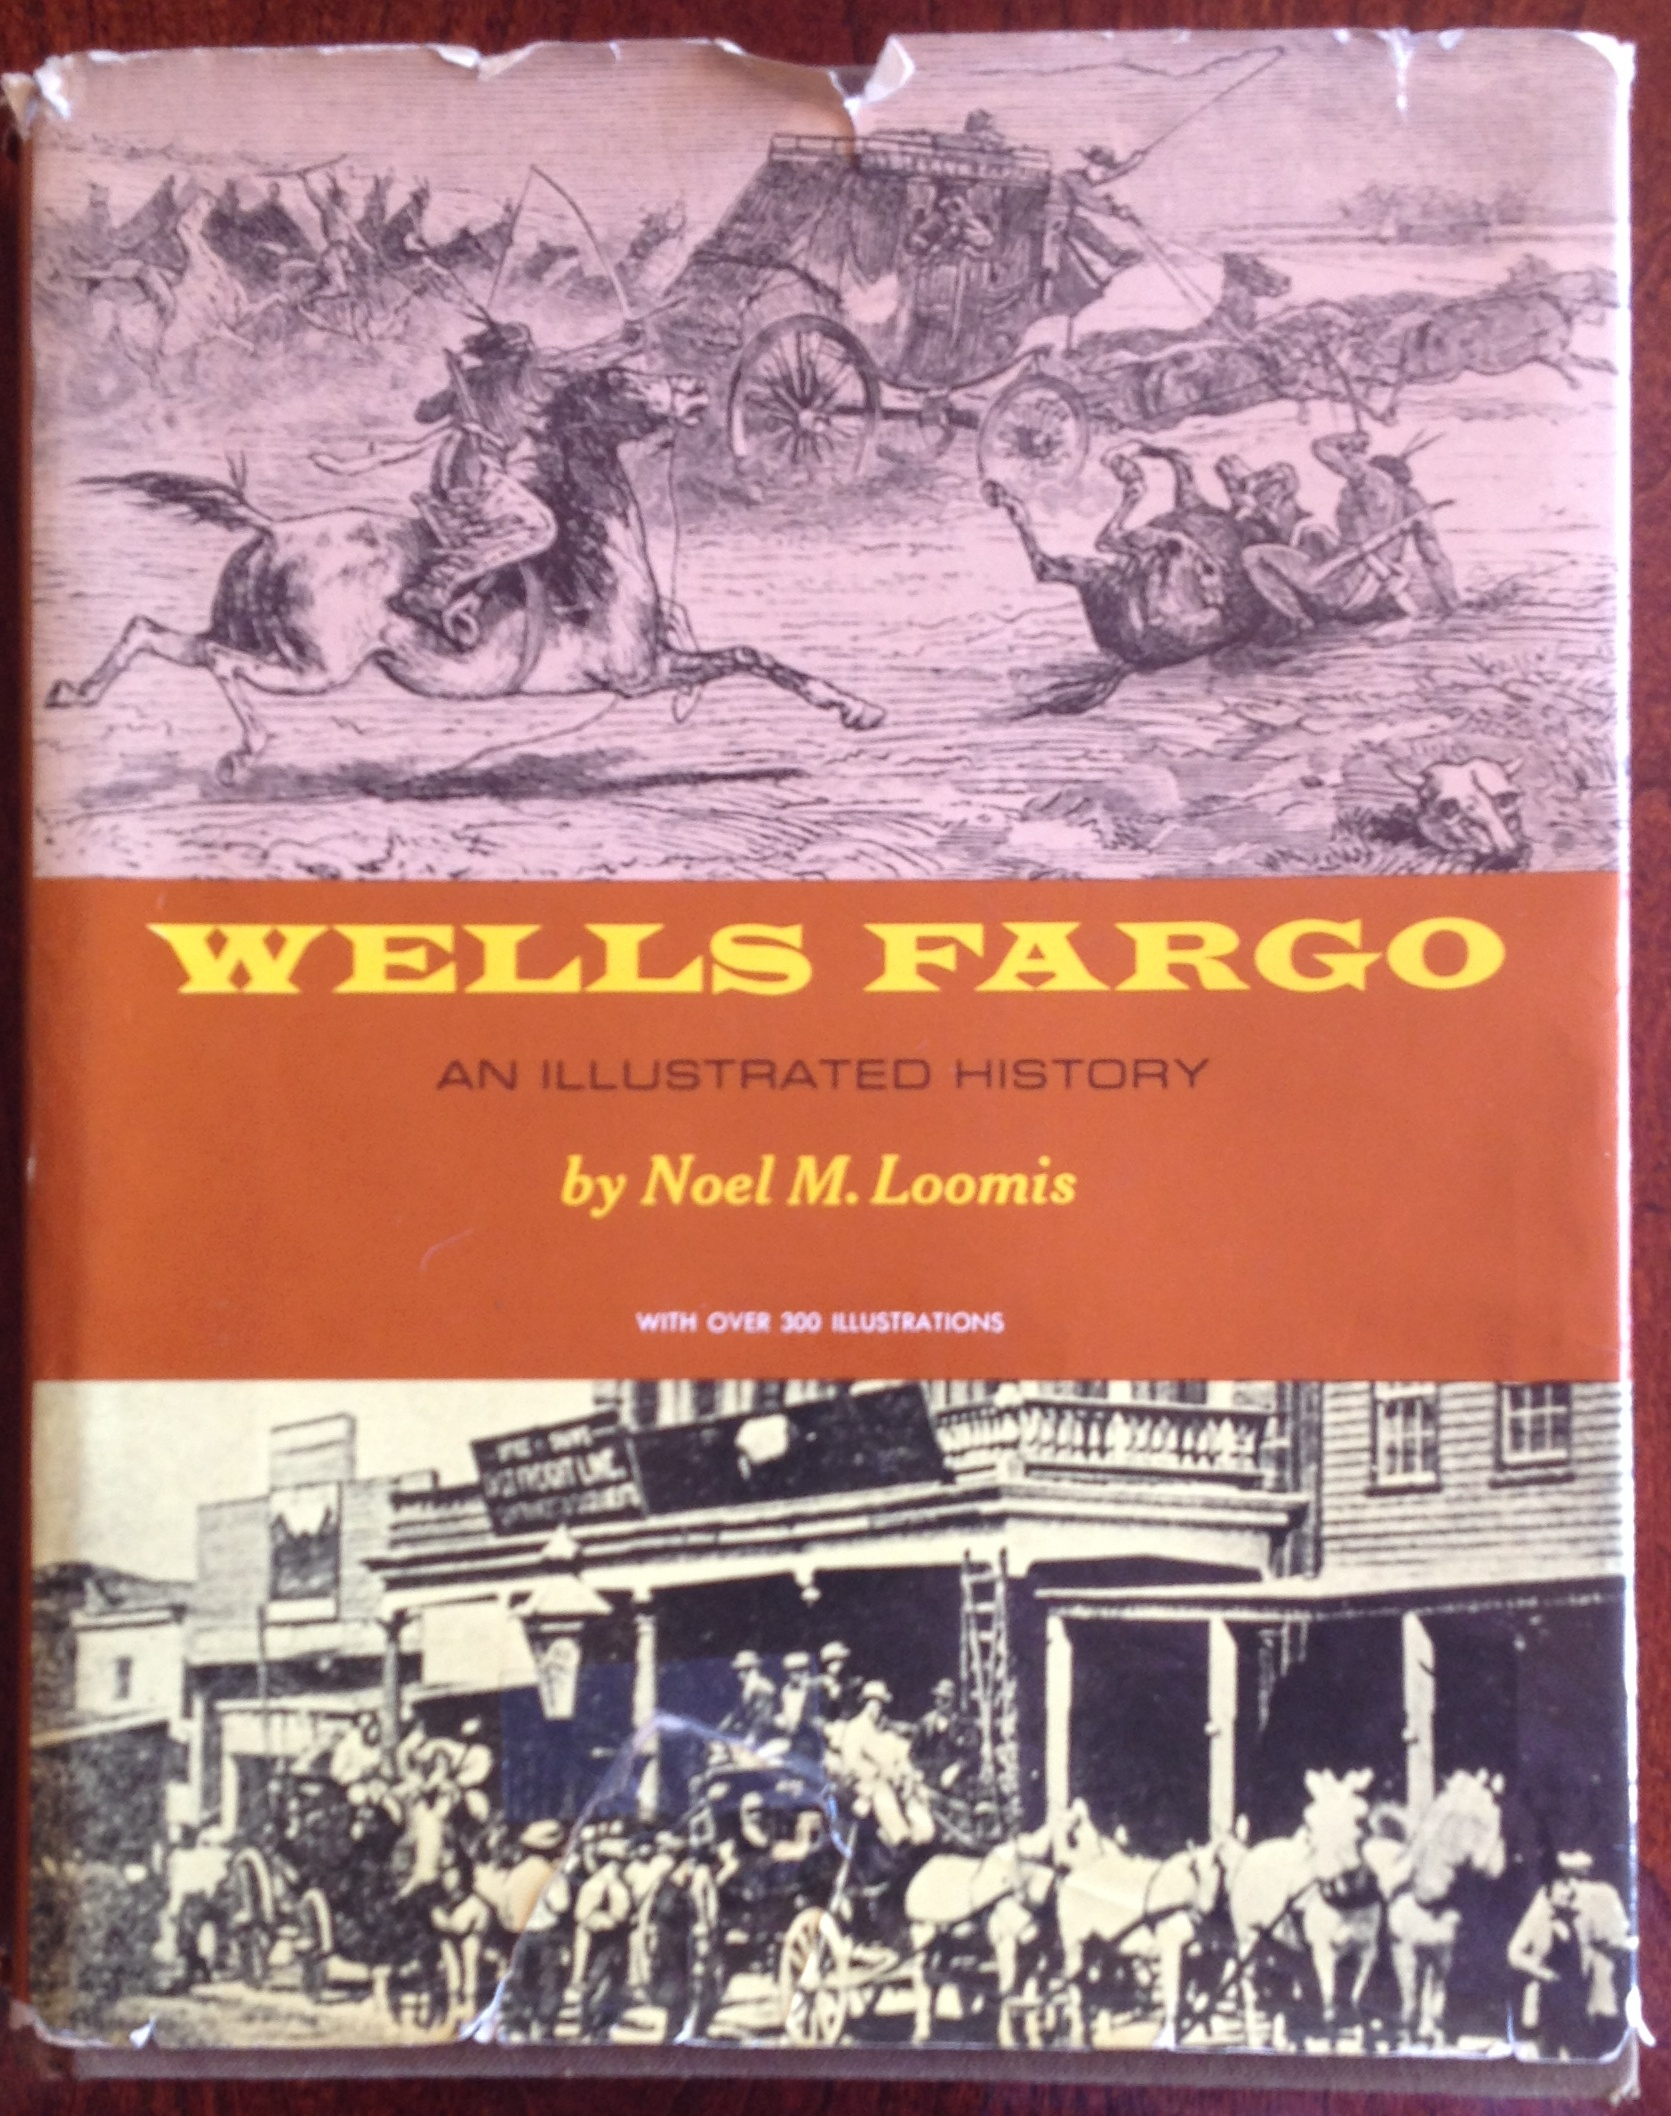 Wells Fargo, An Illustrated History